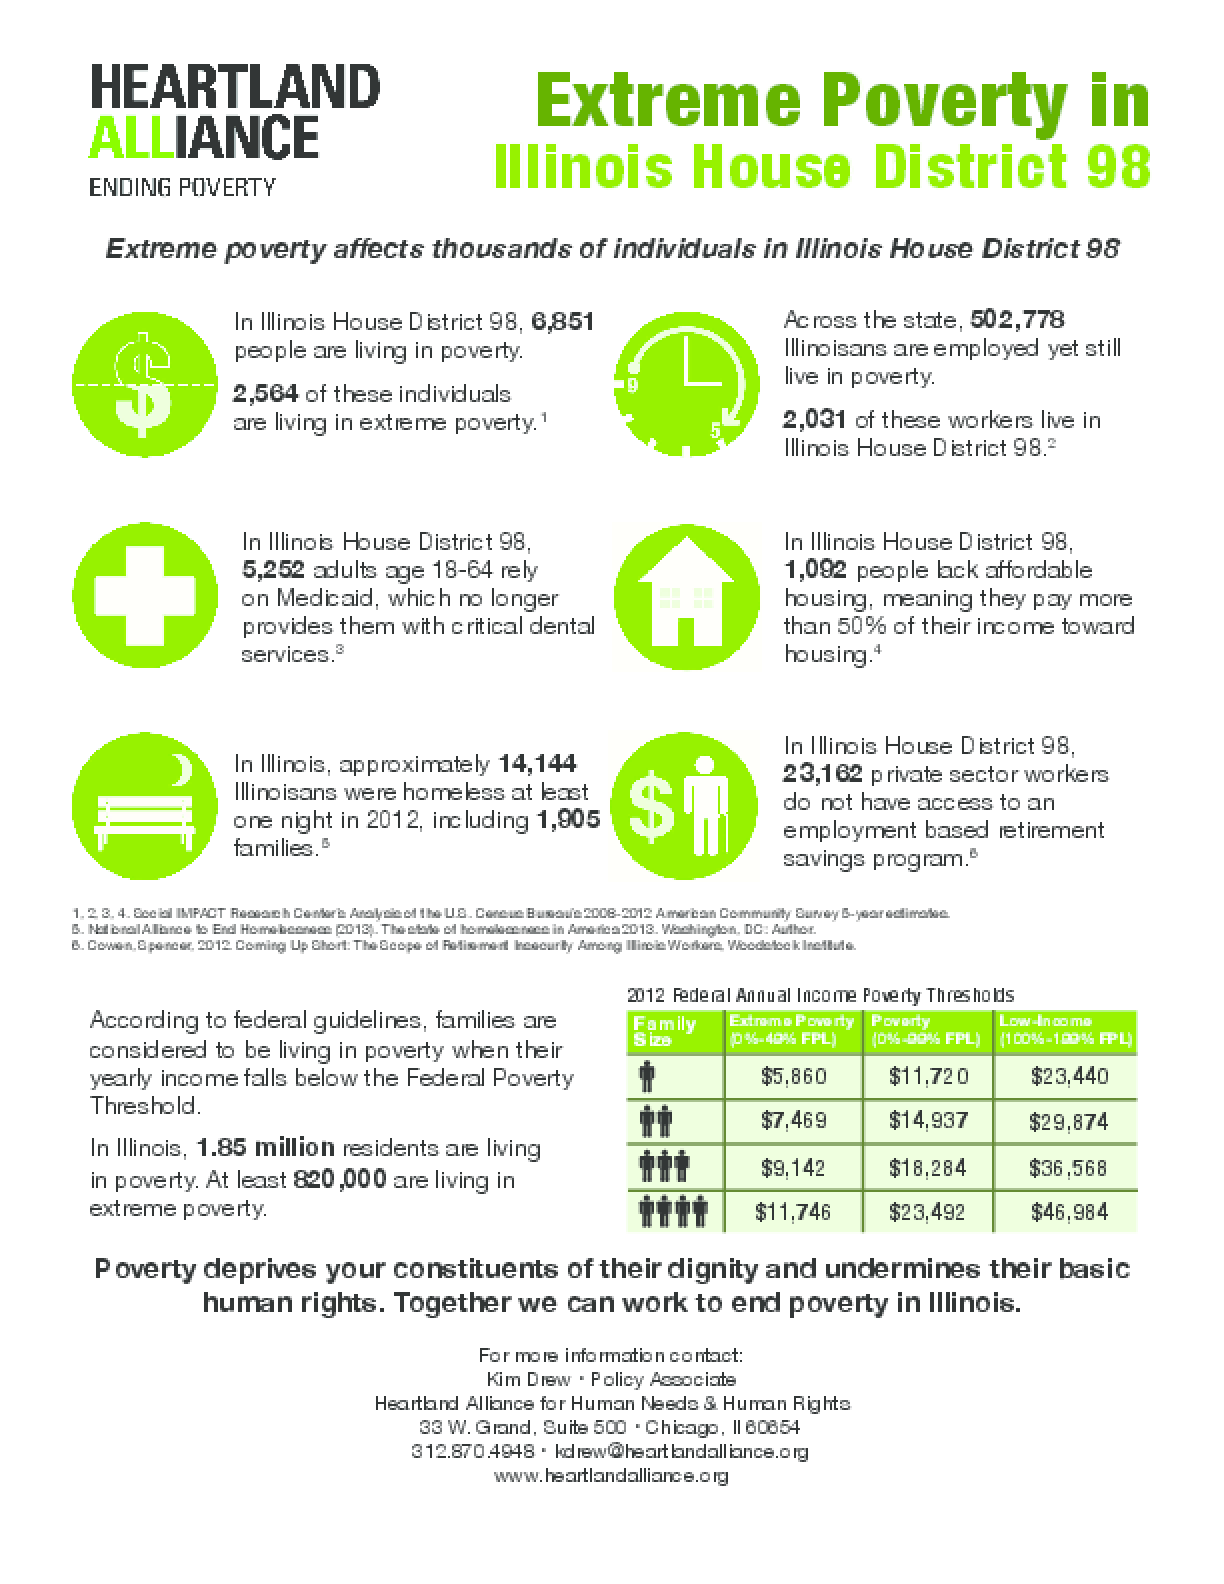 Poverty Fact Sheets for Illinois House District 98